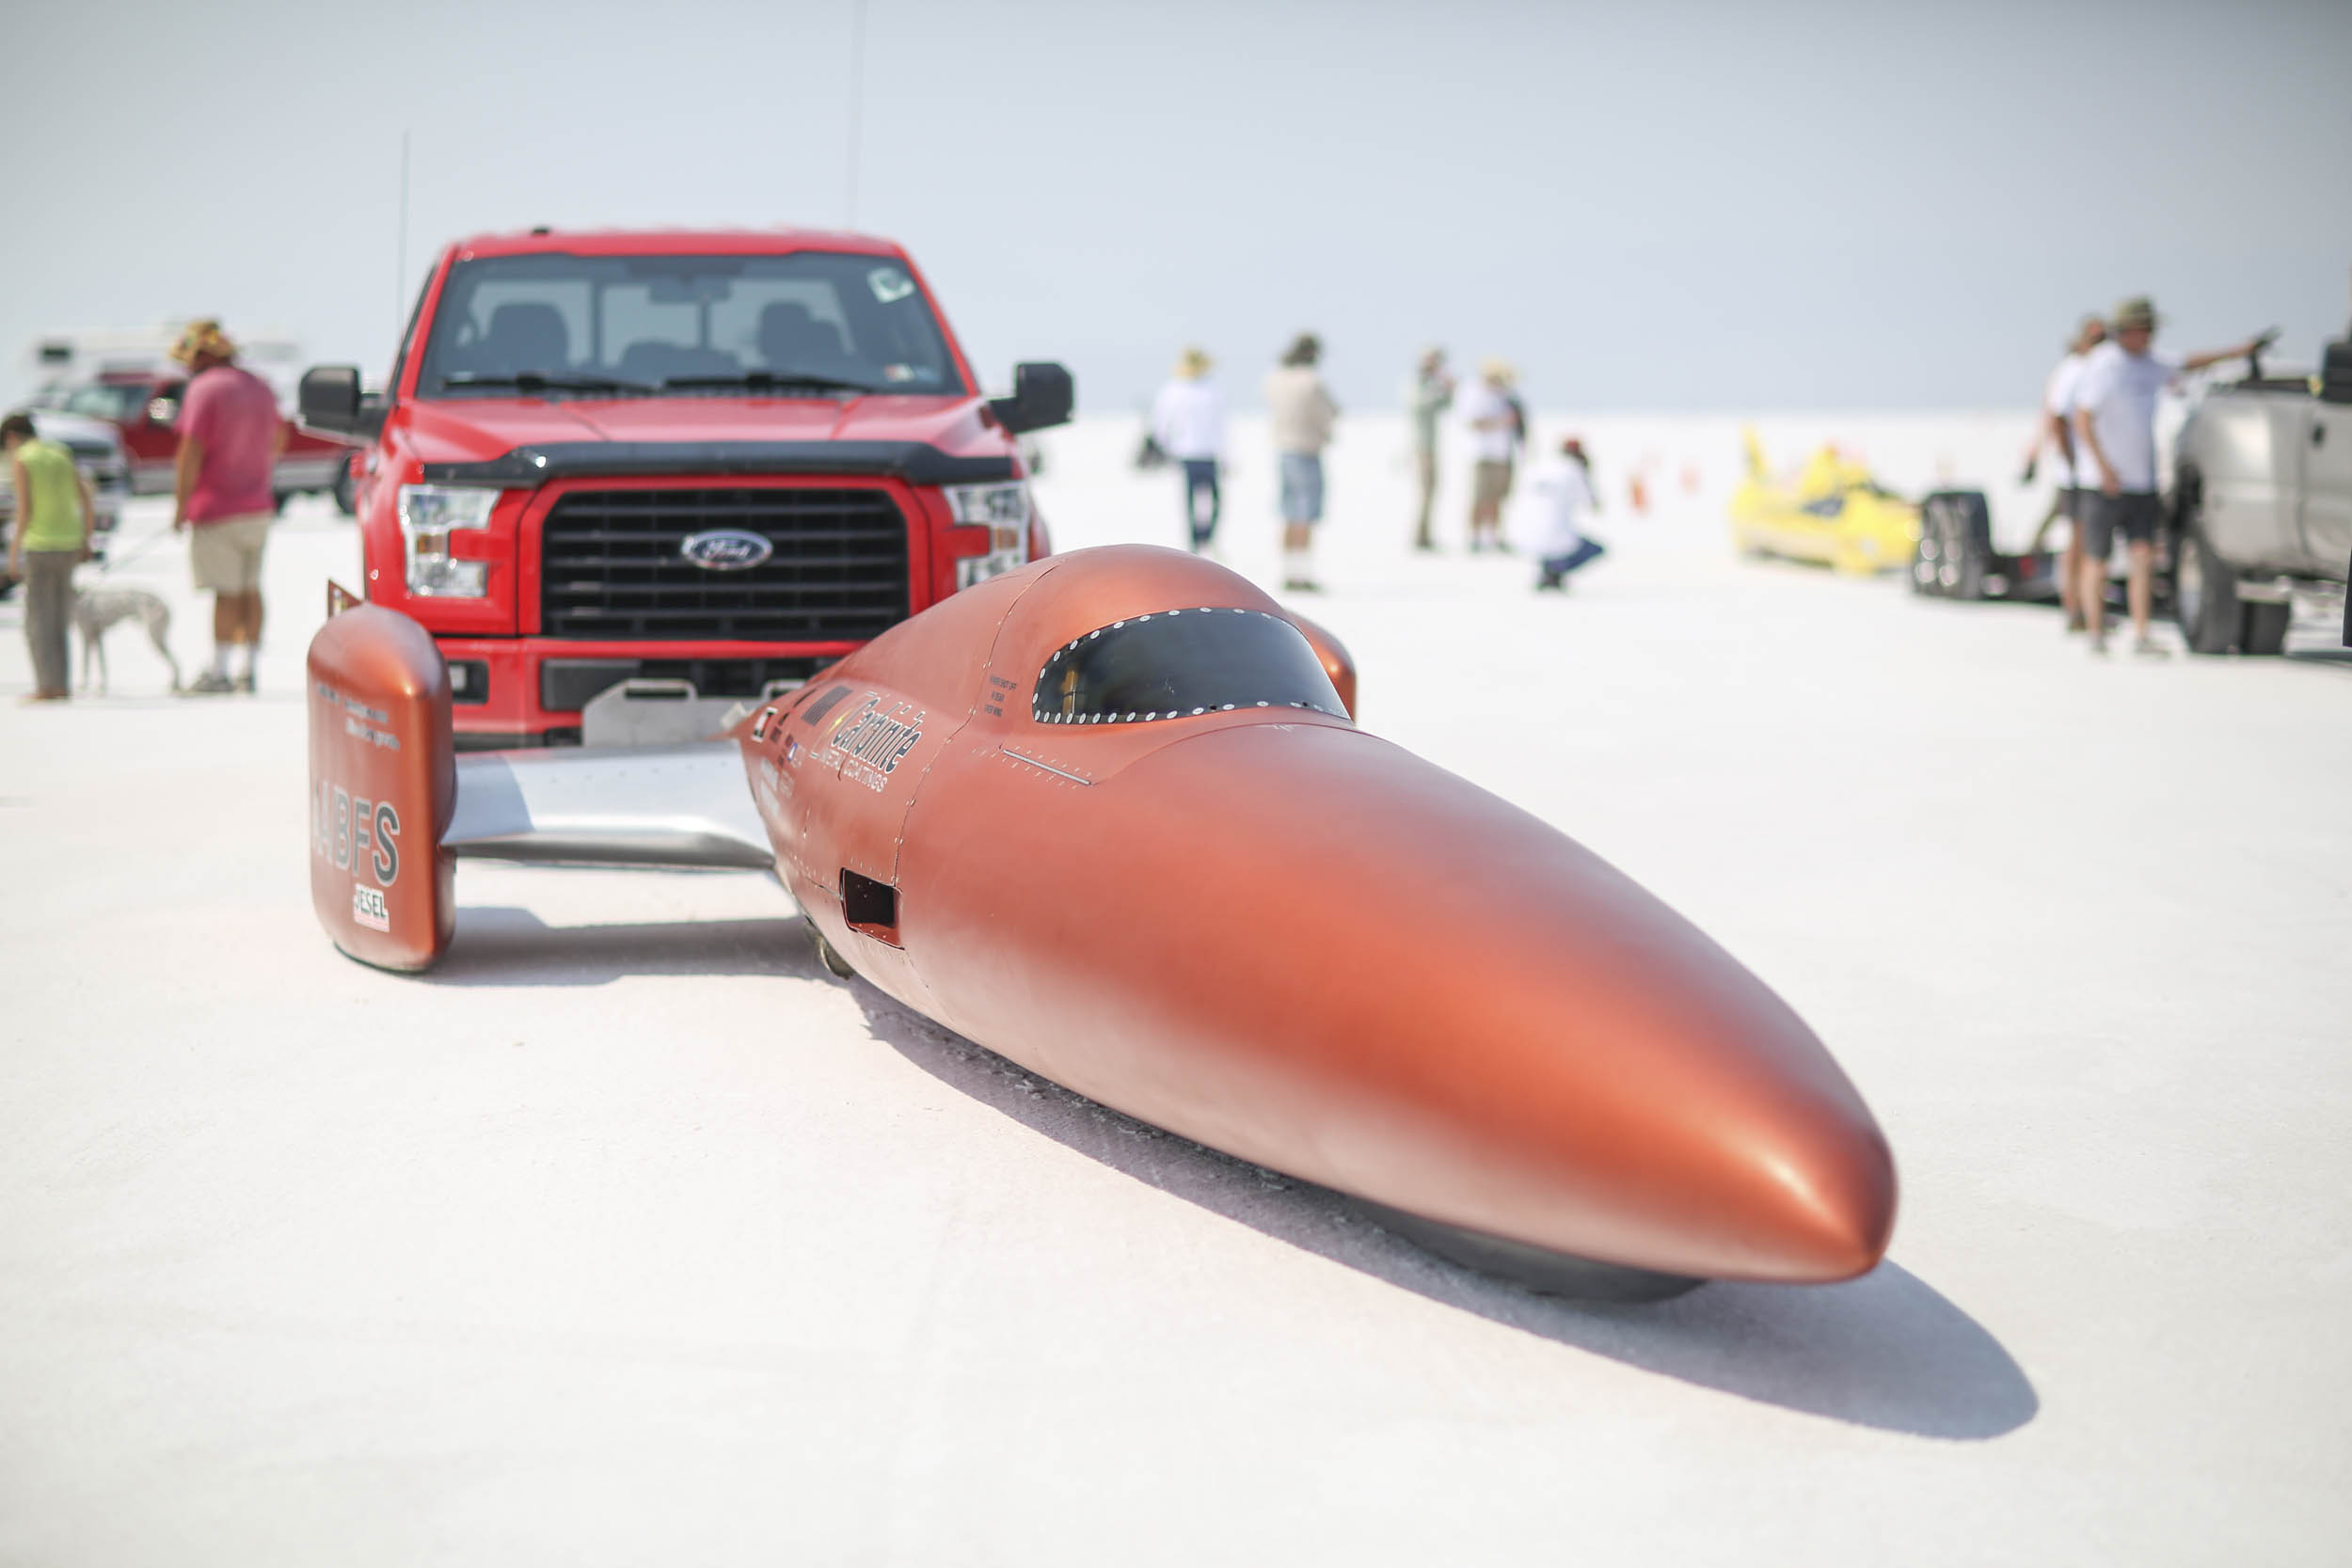 The Carbinite streamliner was one of four fuel streamliners to run in excess of 400 mph at Speed Week 2018, a first for the event as far as we can tell.